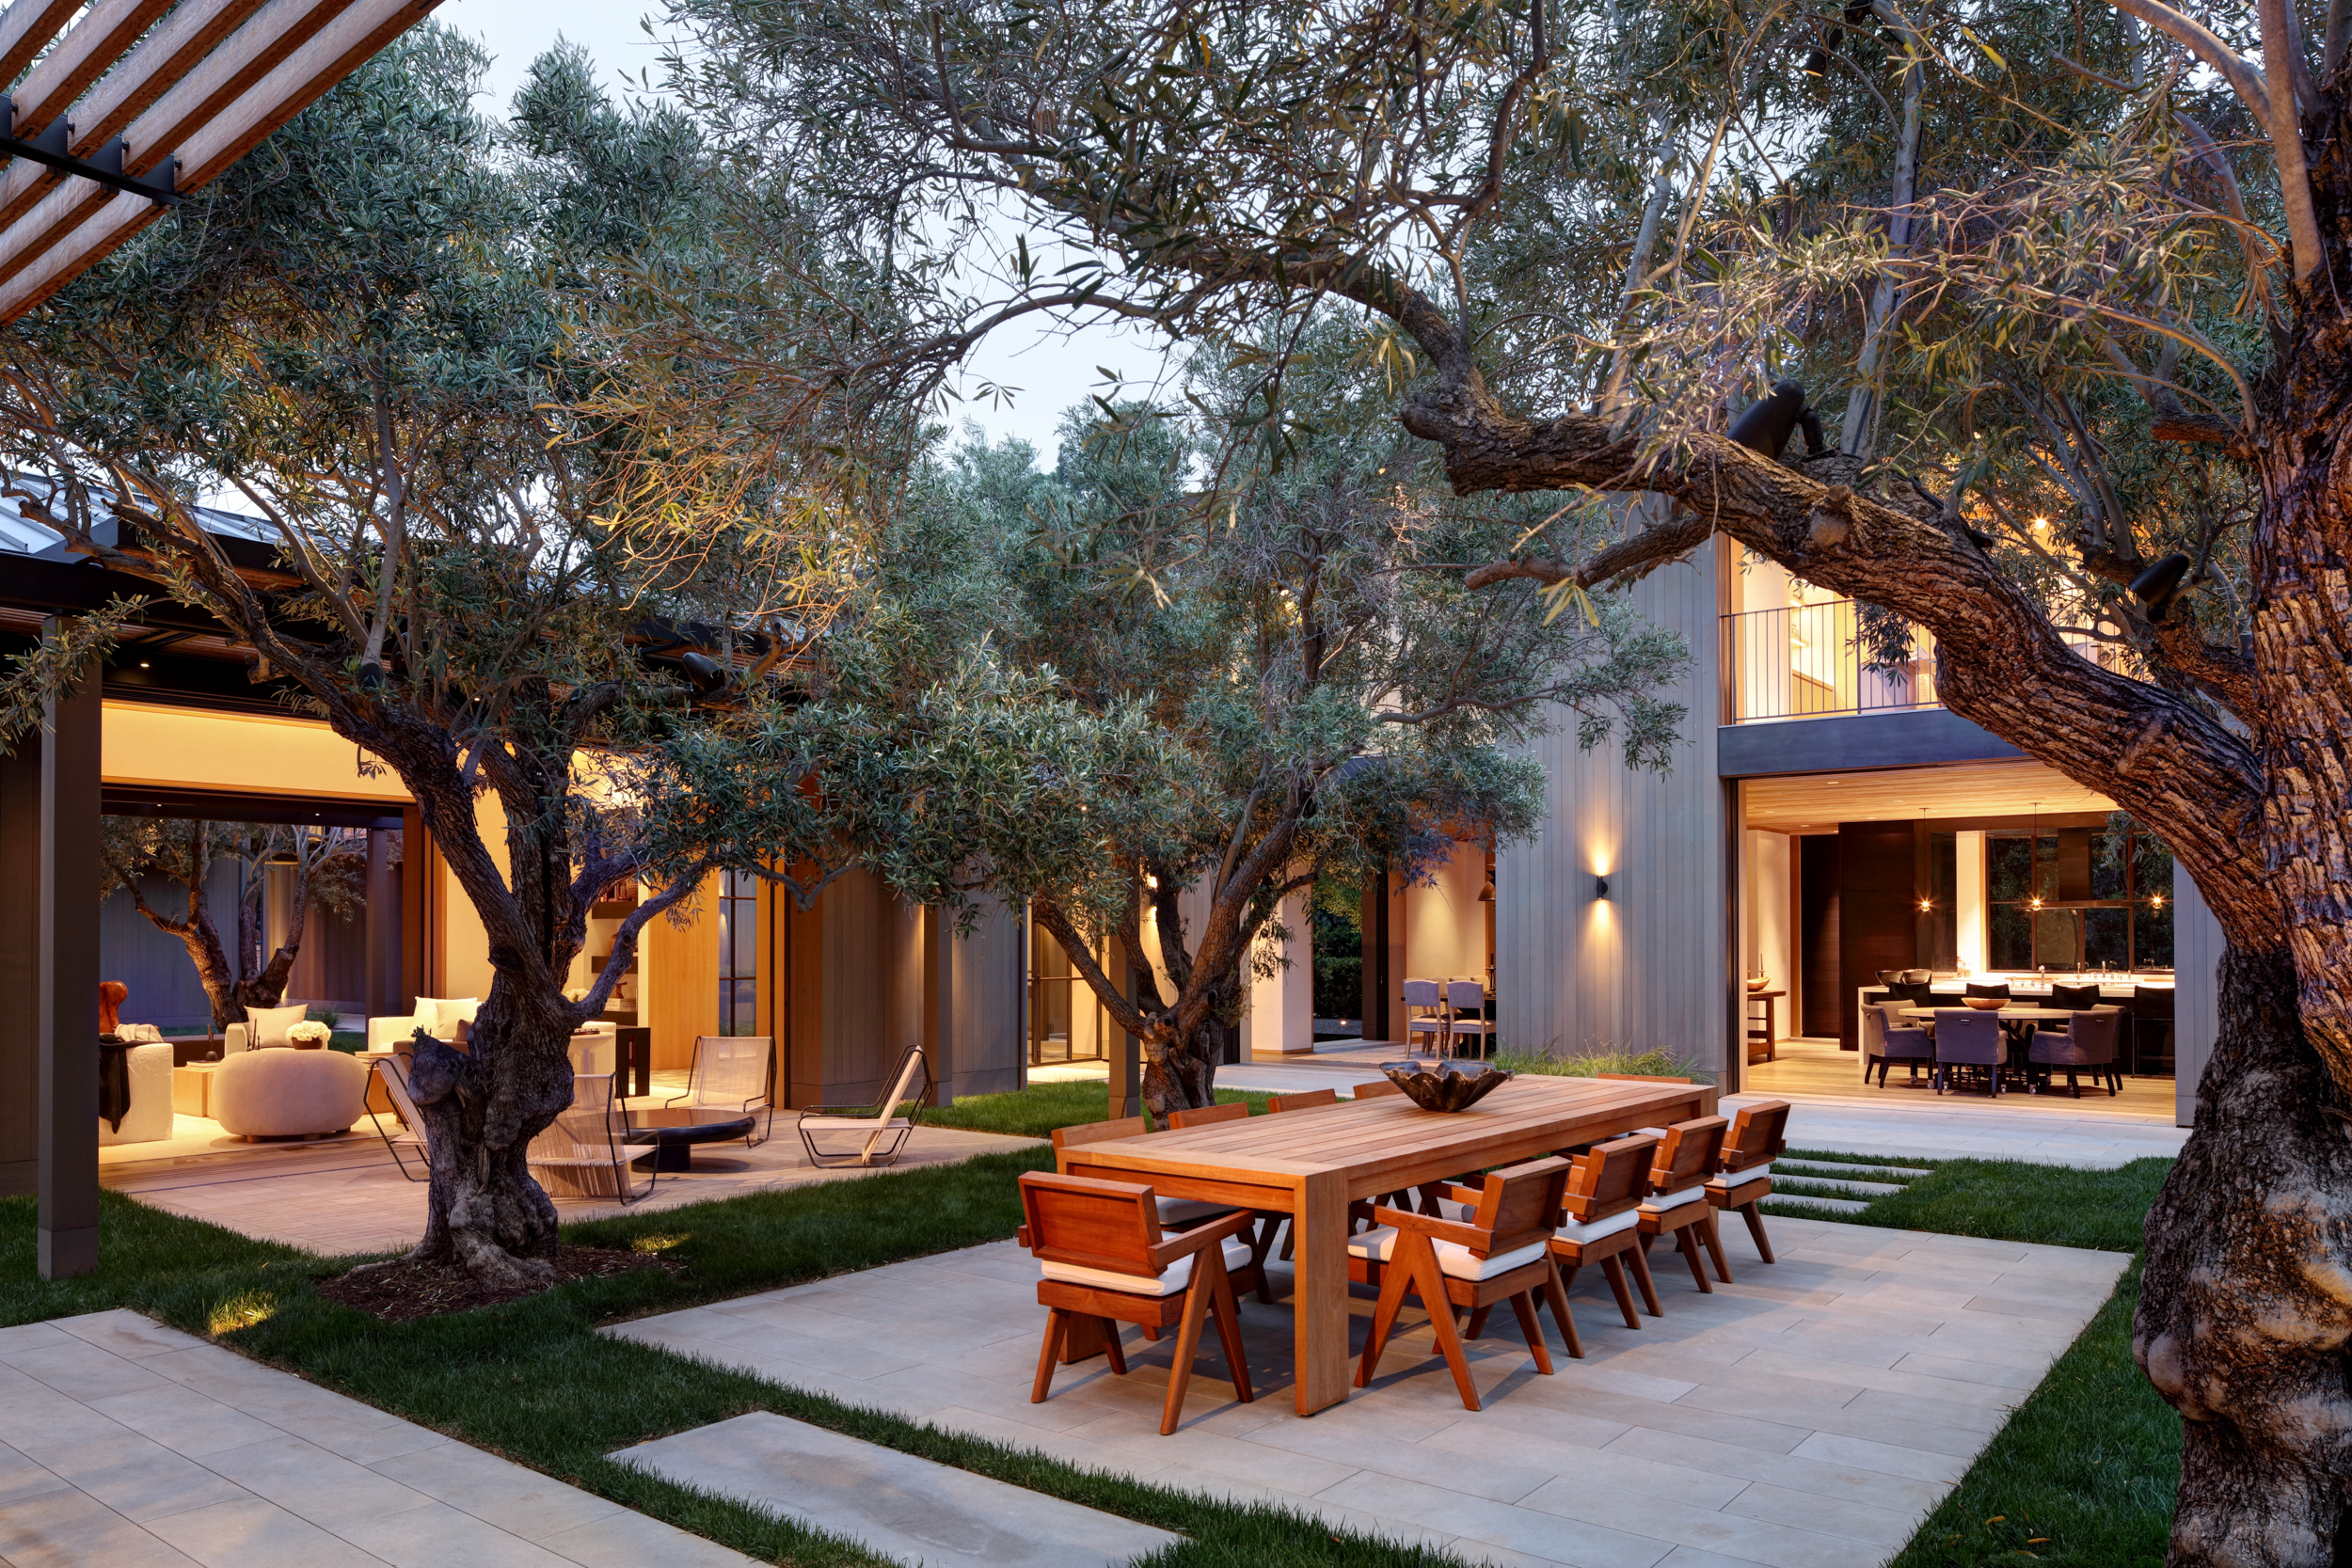 modern residential courtyard with pavers and olive trees